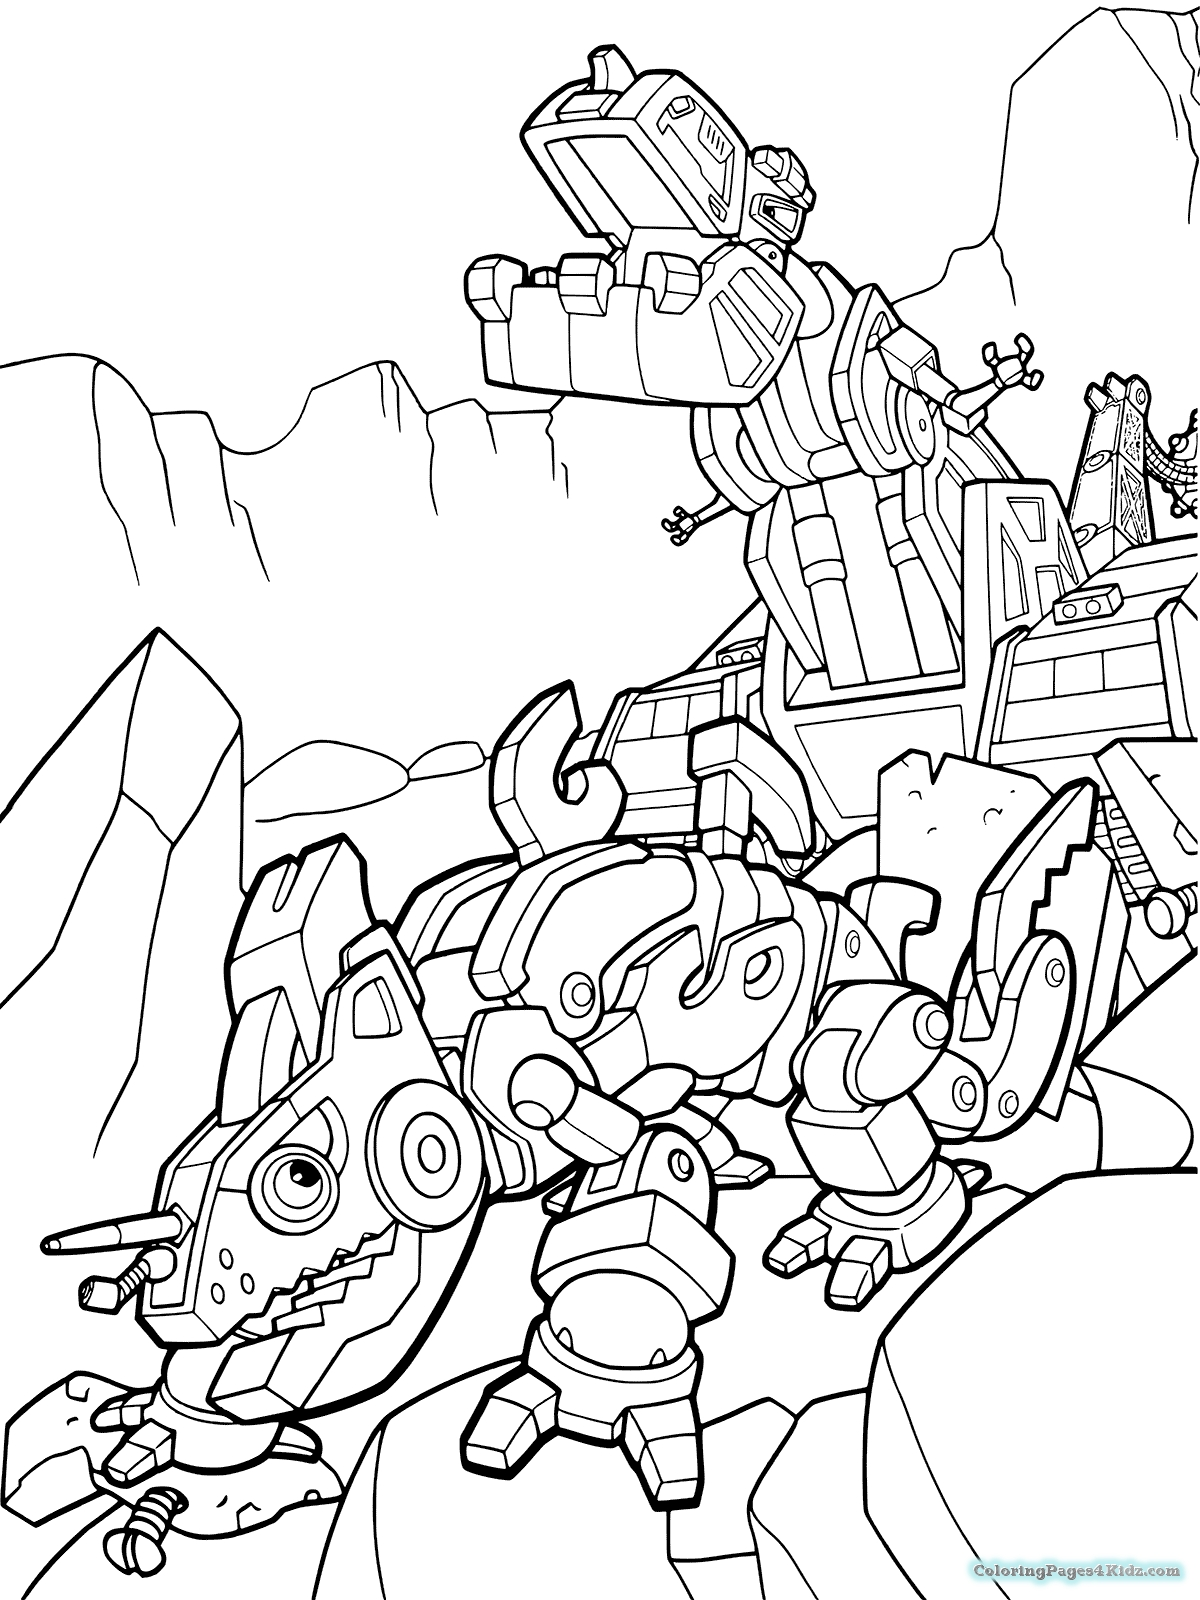 24 Dinotrux Coloring Pages Pictures | FREE COLORING PAGES - Part 2